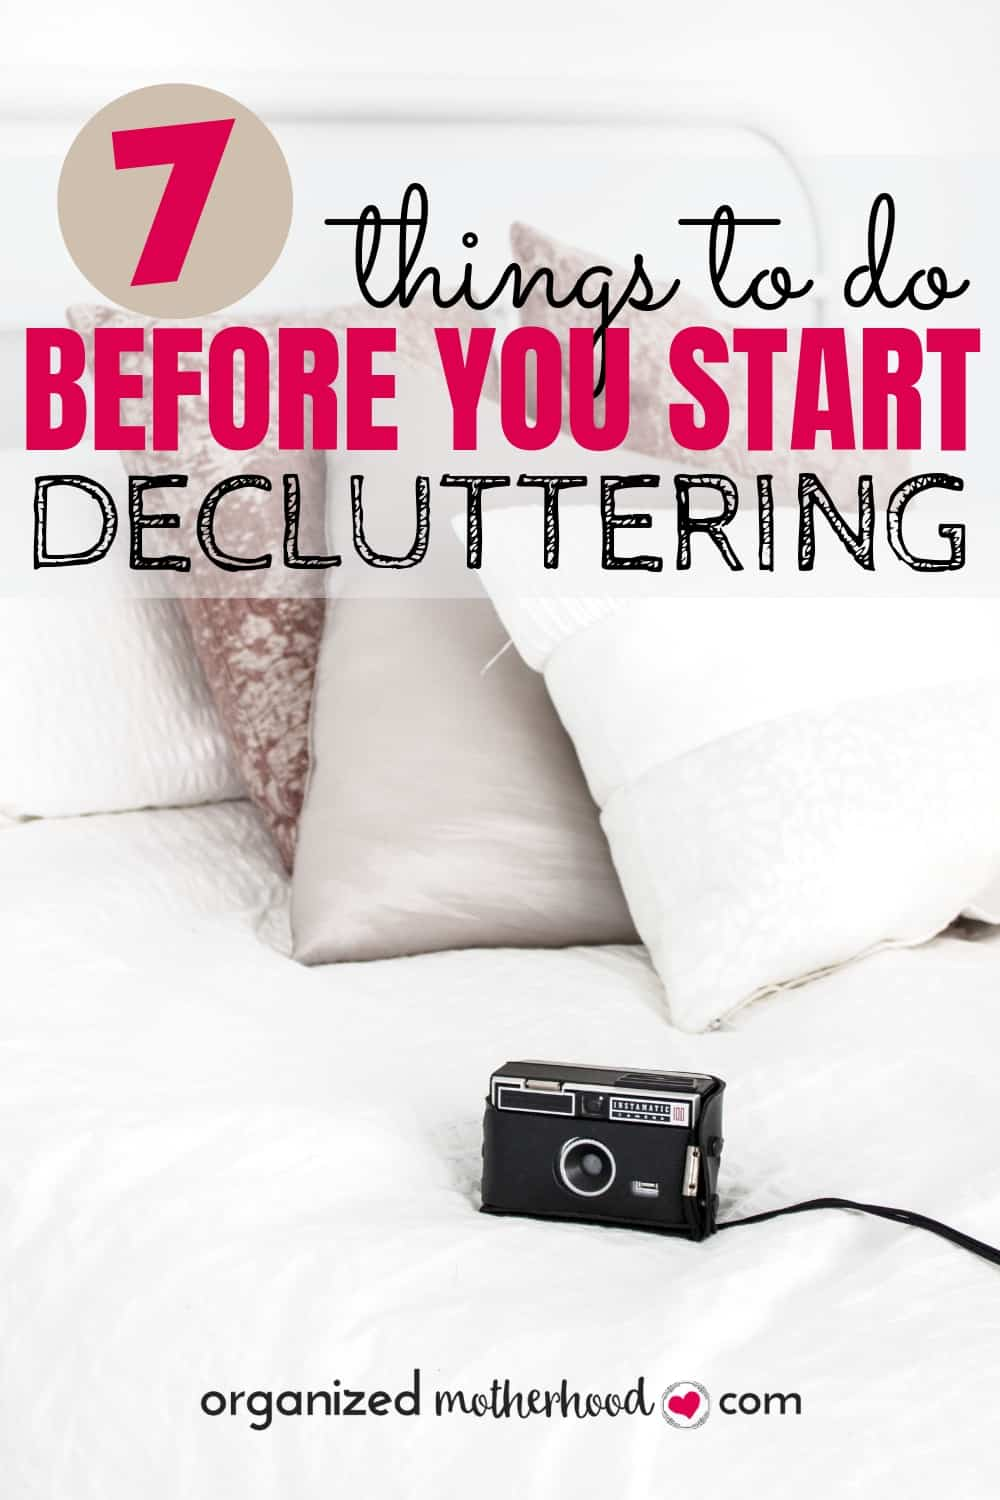 Thinking about decluttering? Do these things first to create a plan, stay motivated, and make time to get your entire home organized.